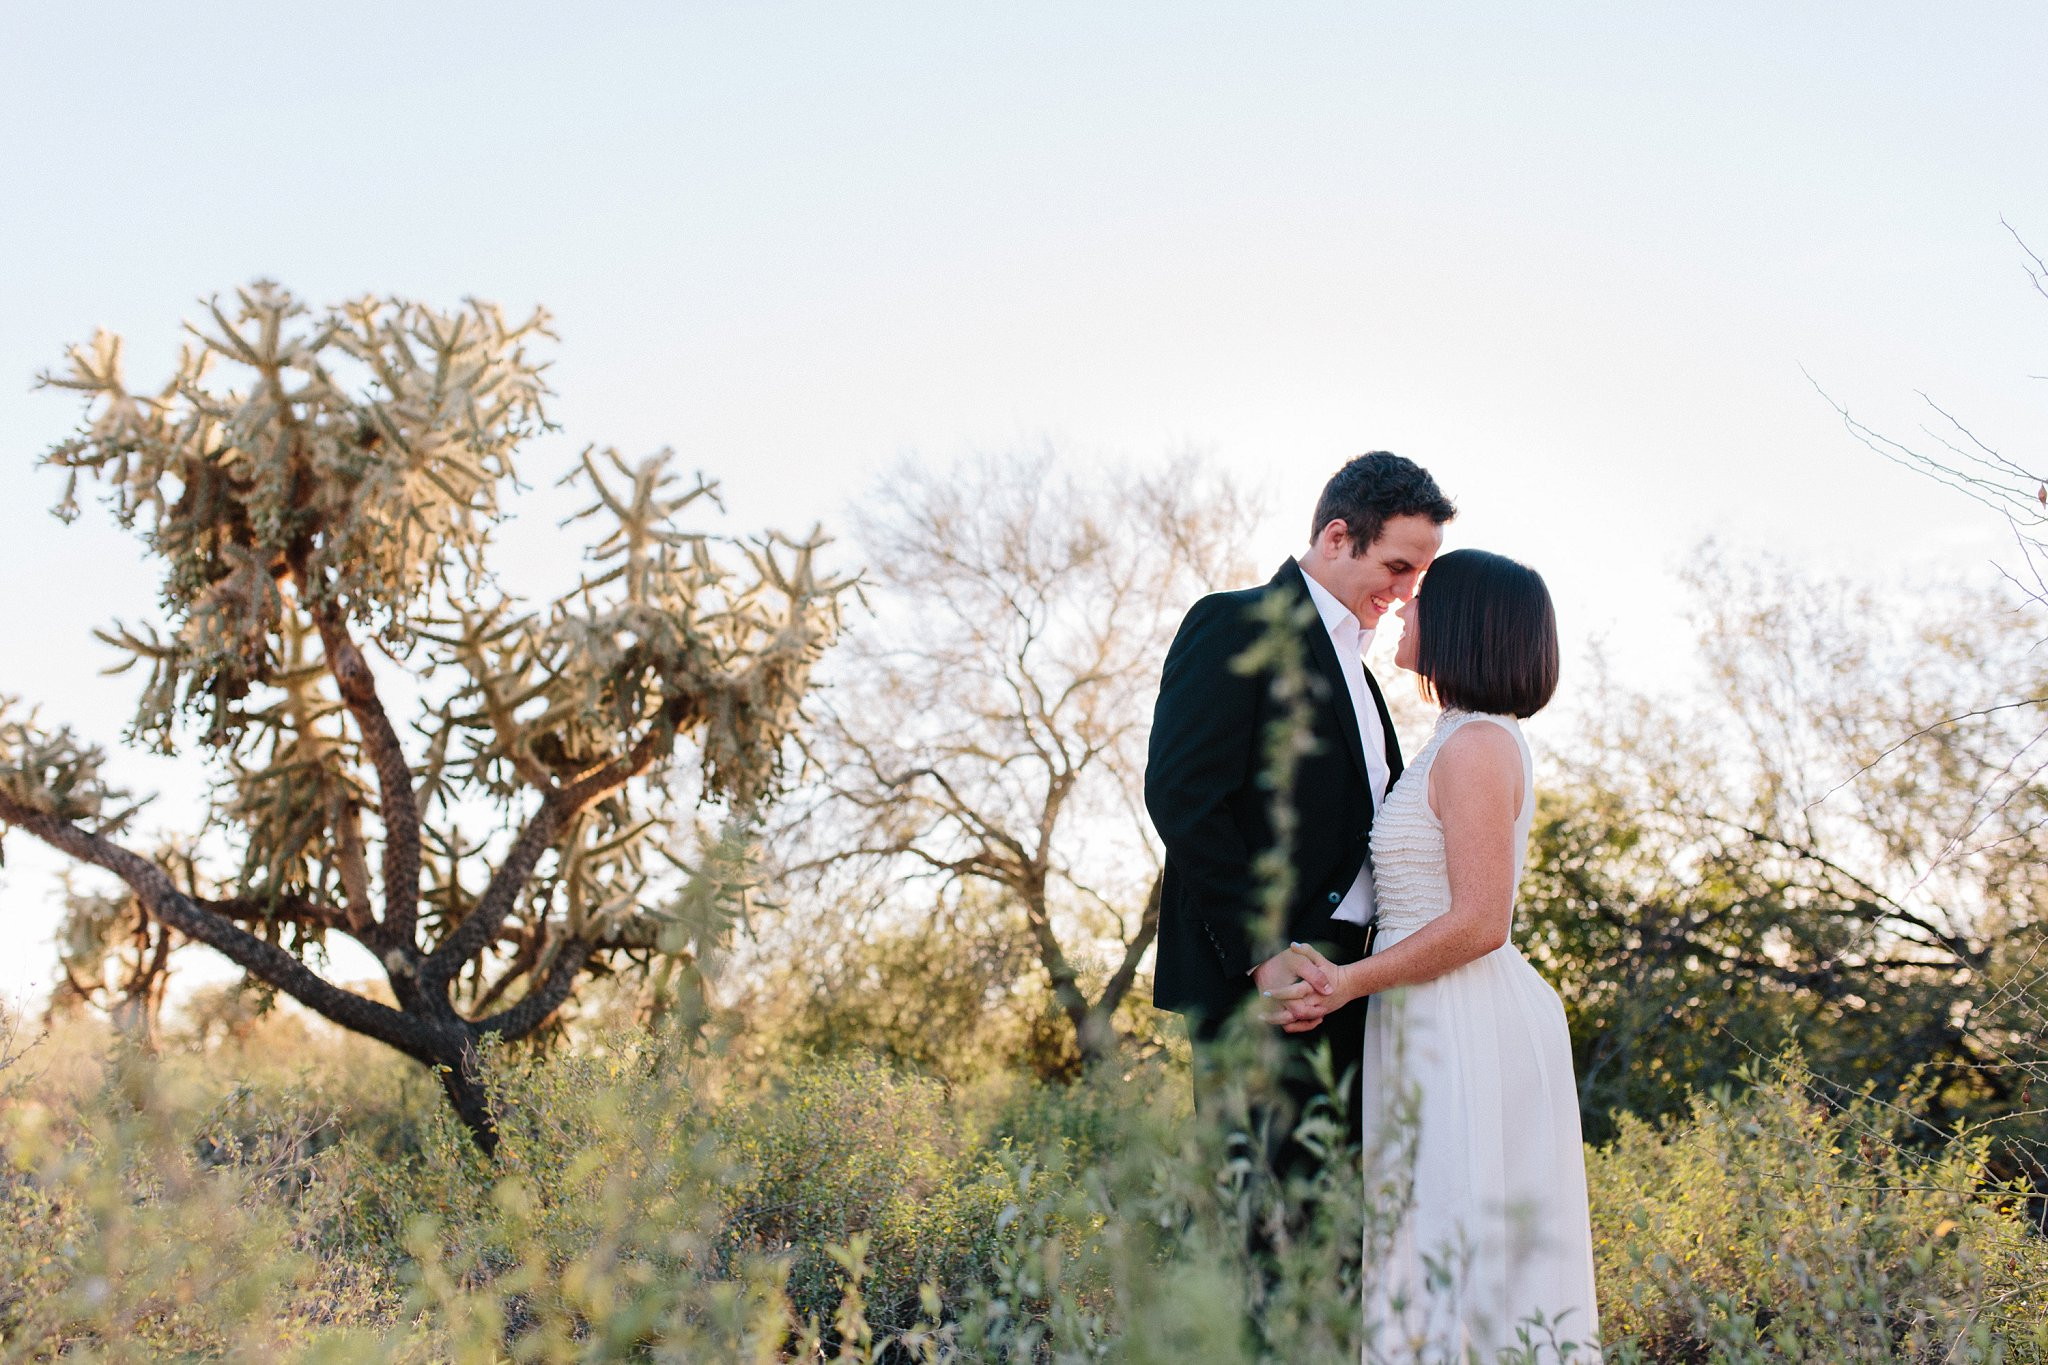 eloping in the desert in Arizona